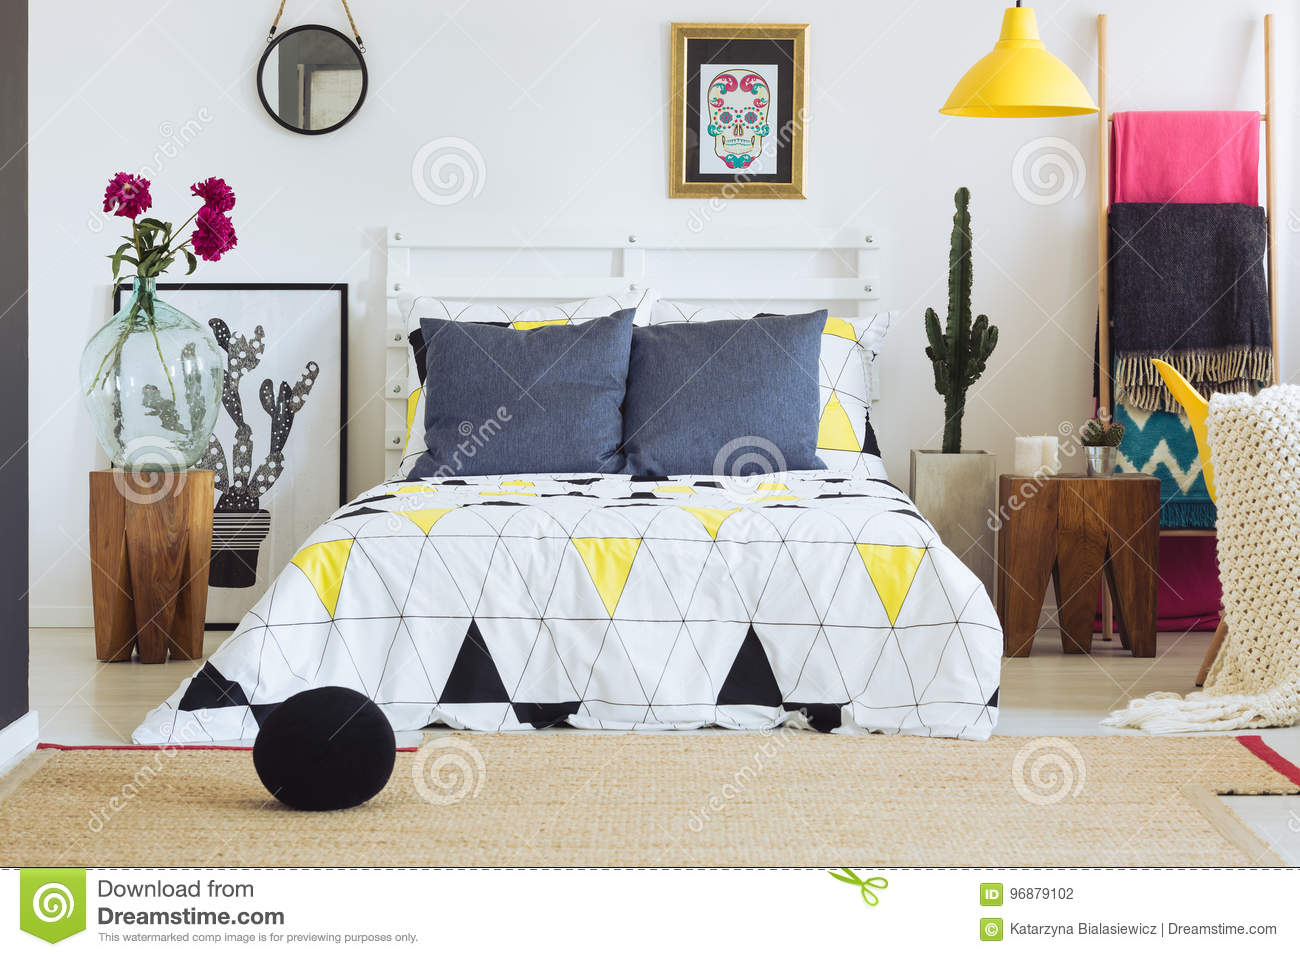 648 Mexican Bedroom Photos Free Royalty Free Stock Photos From Dreamstime